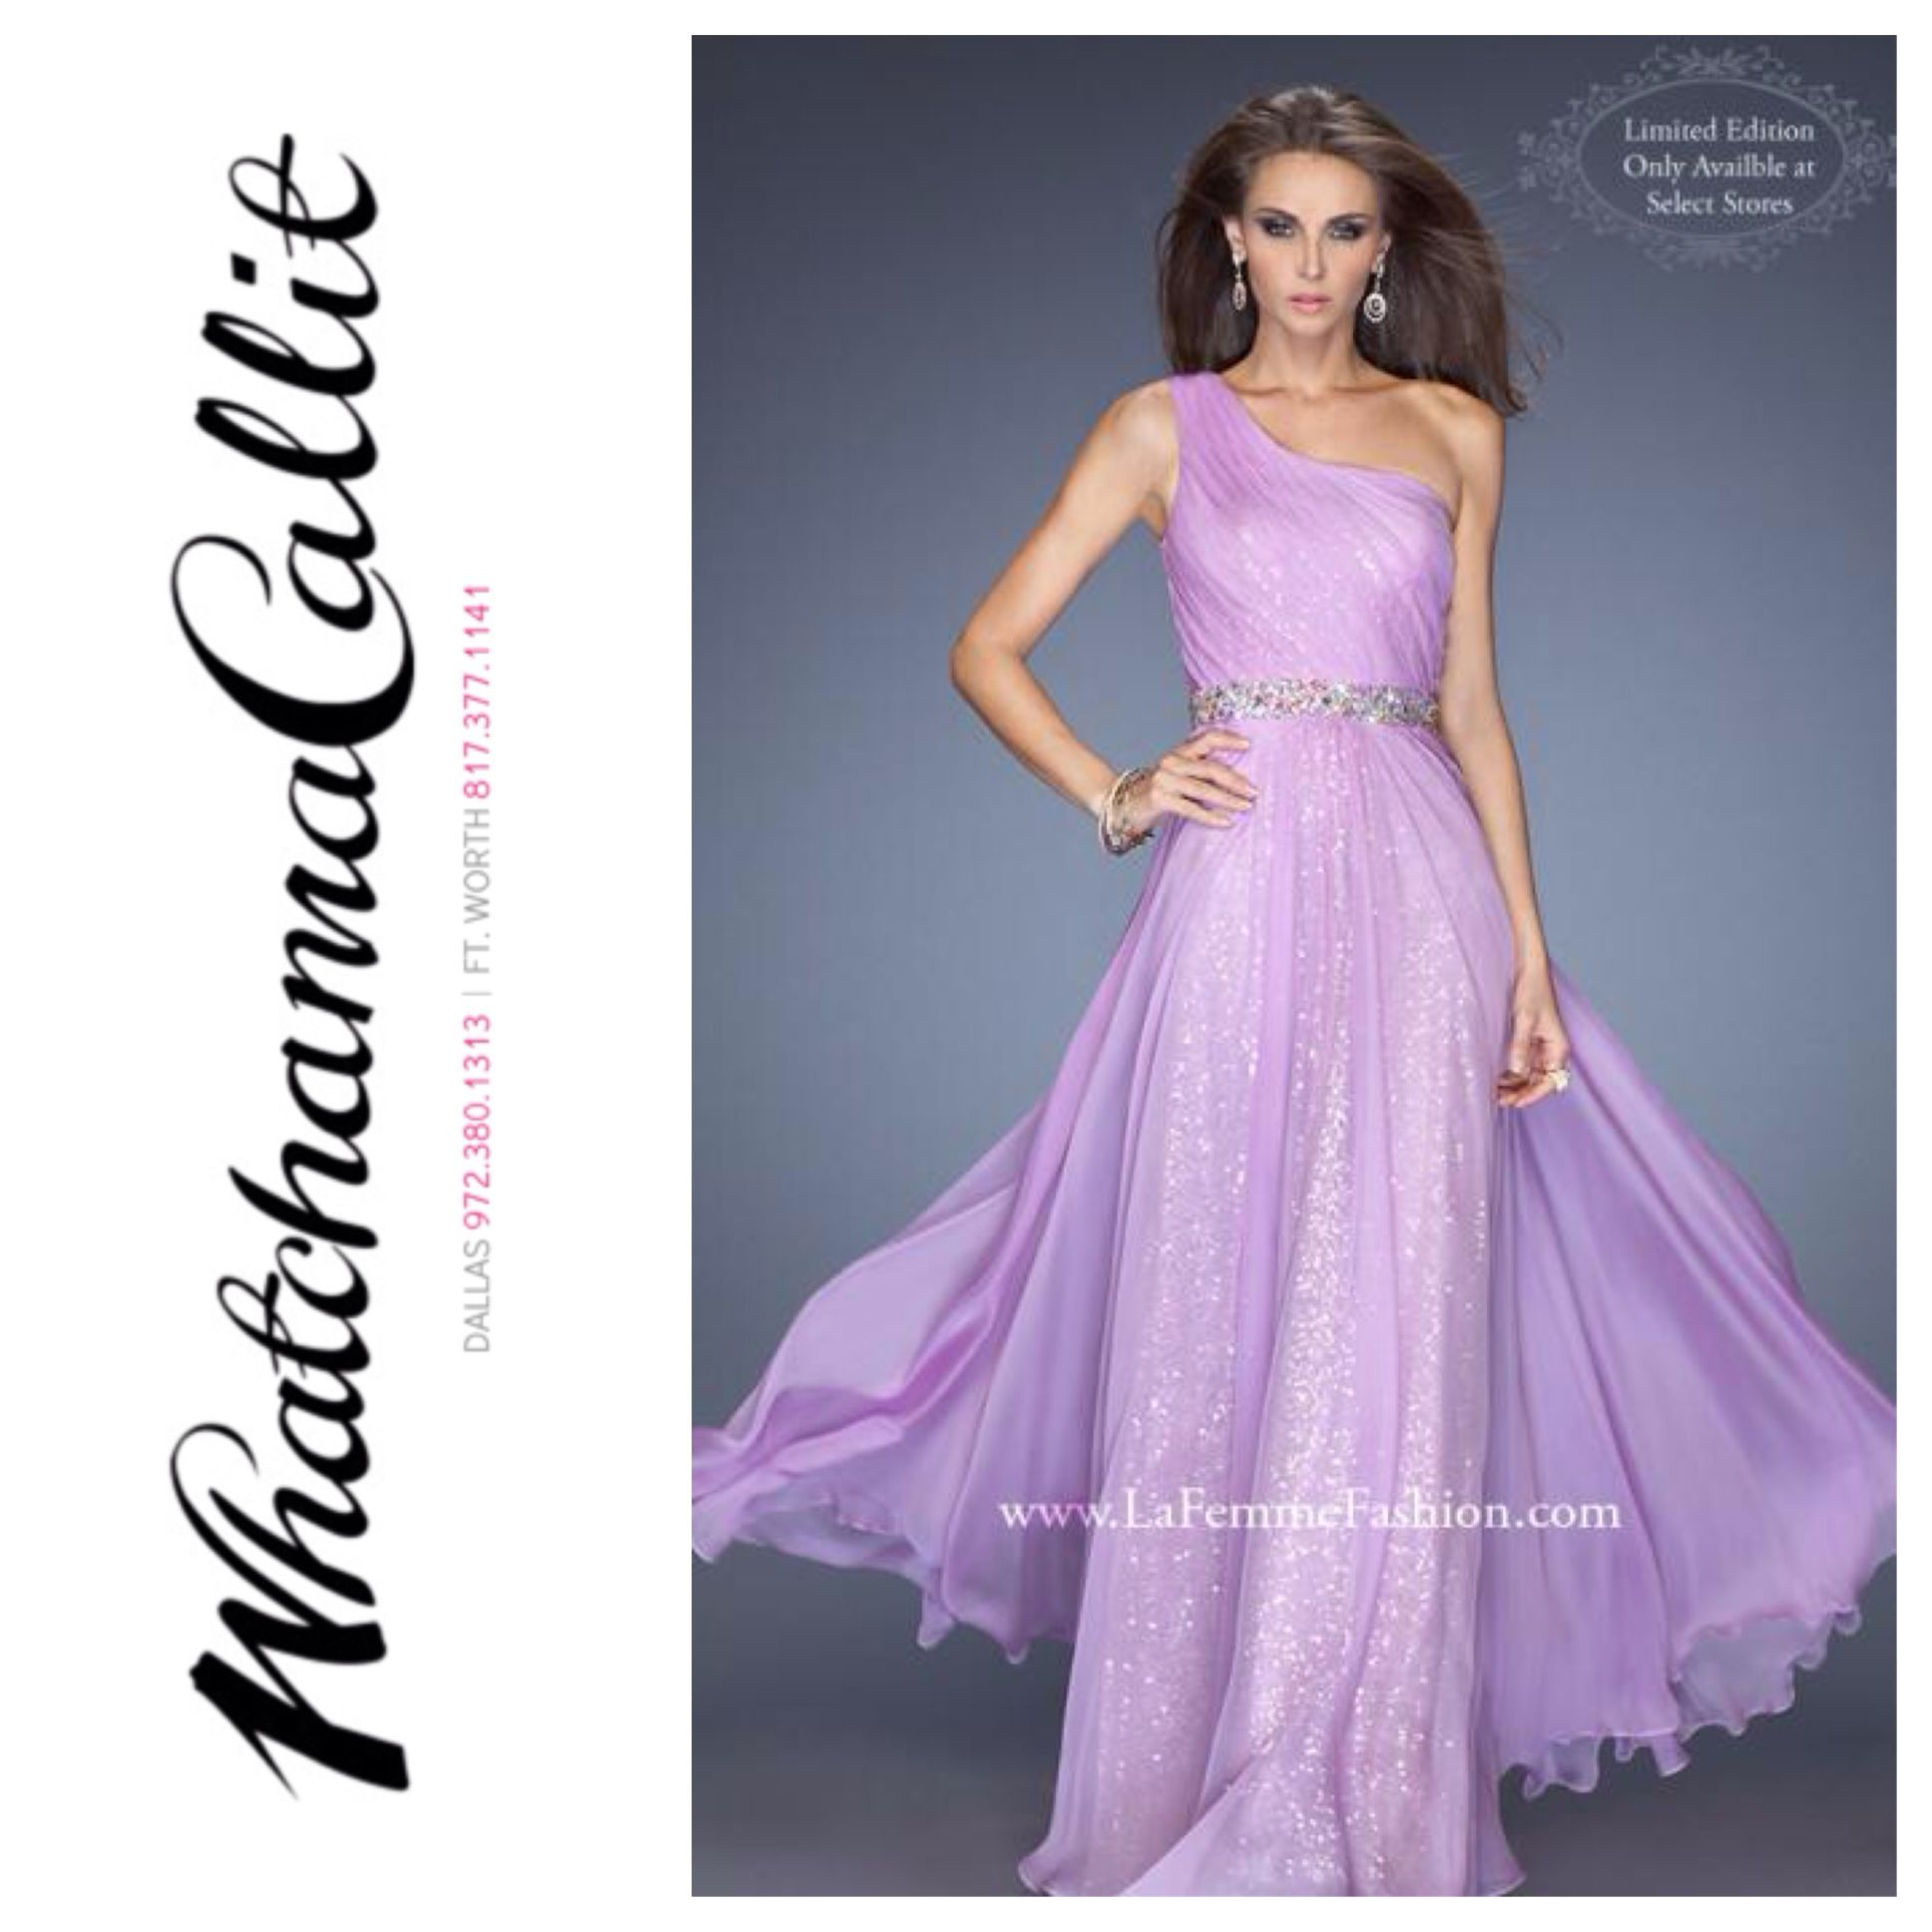 La Femme dress available at Whatchamacallit Boutique for #prom2014 ...